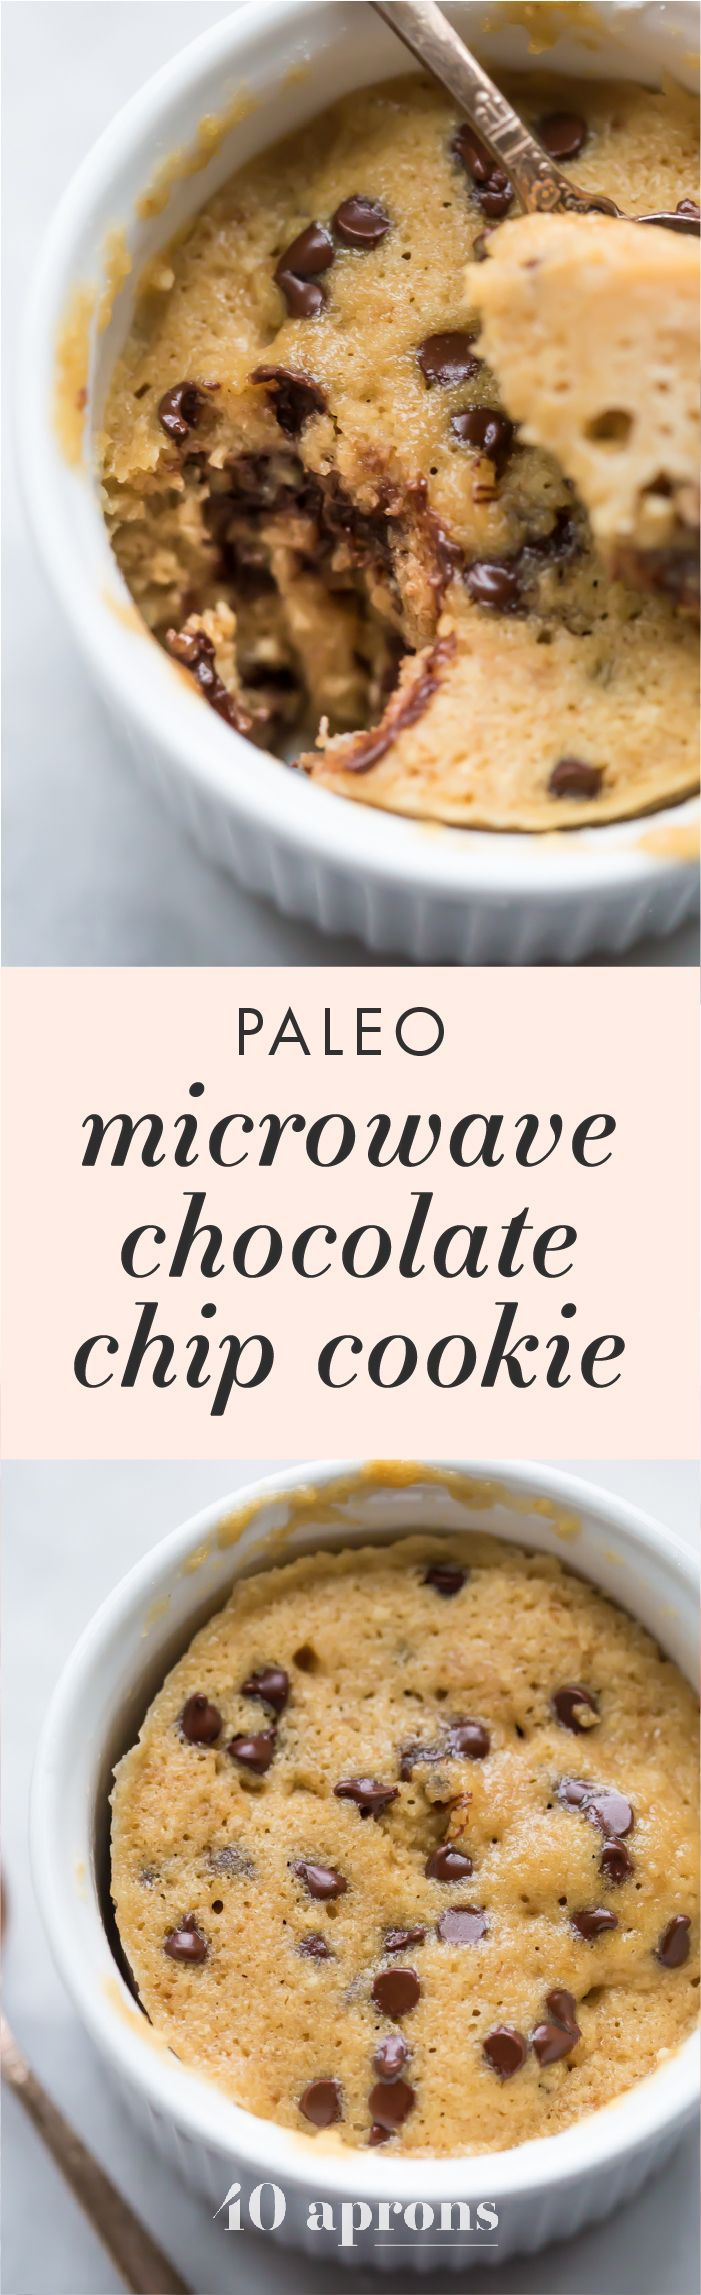 This paleo microwave cookie with chocolate chips is a perfect paleo microwave dessert! It only takes a few minutes & a couple dishes to make this treat.